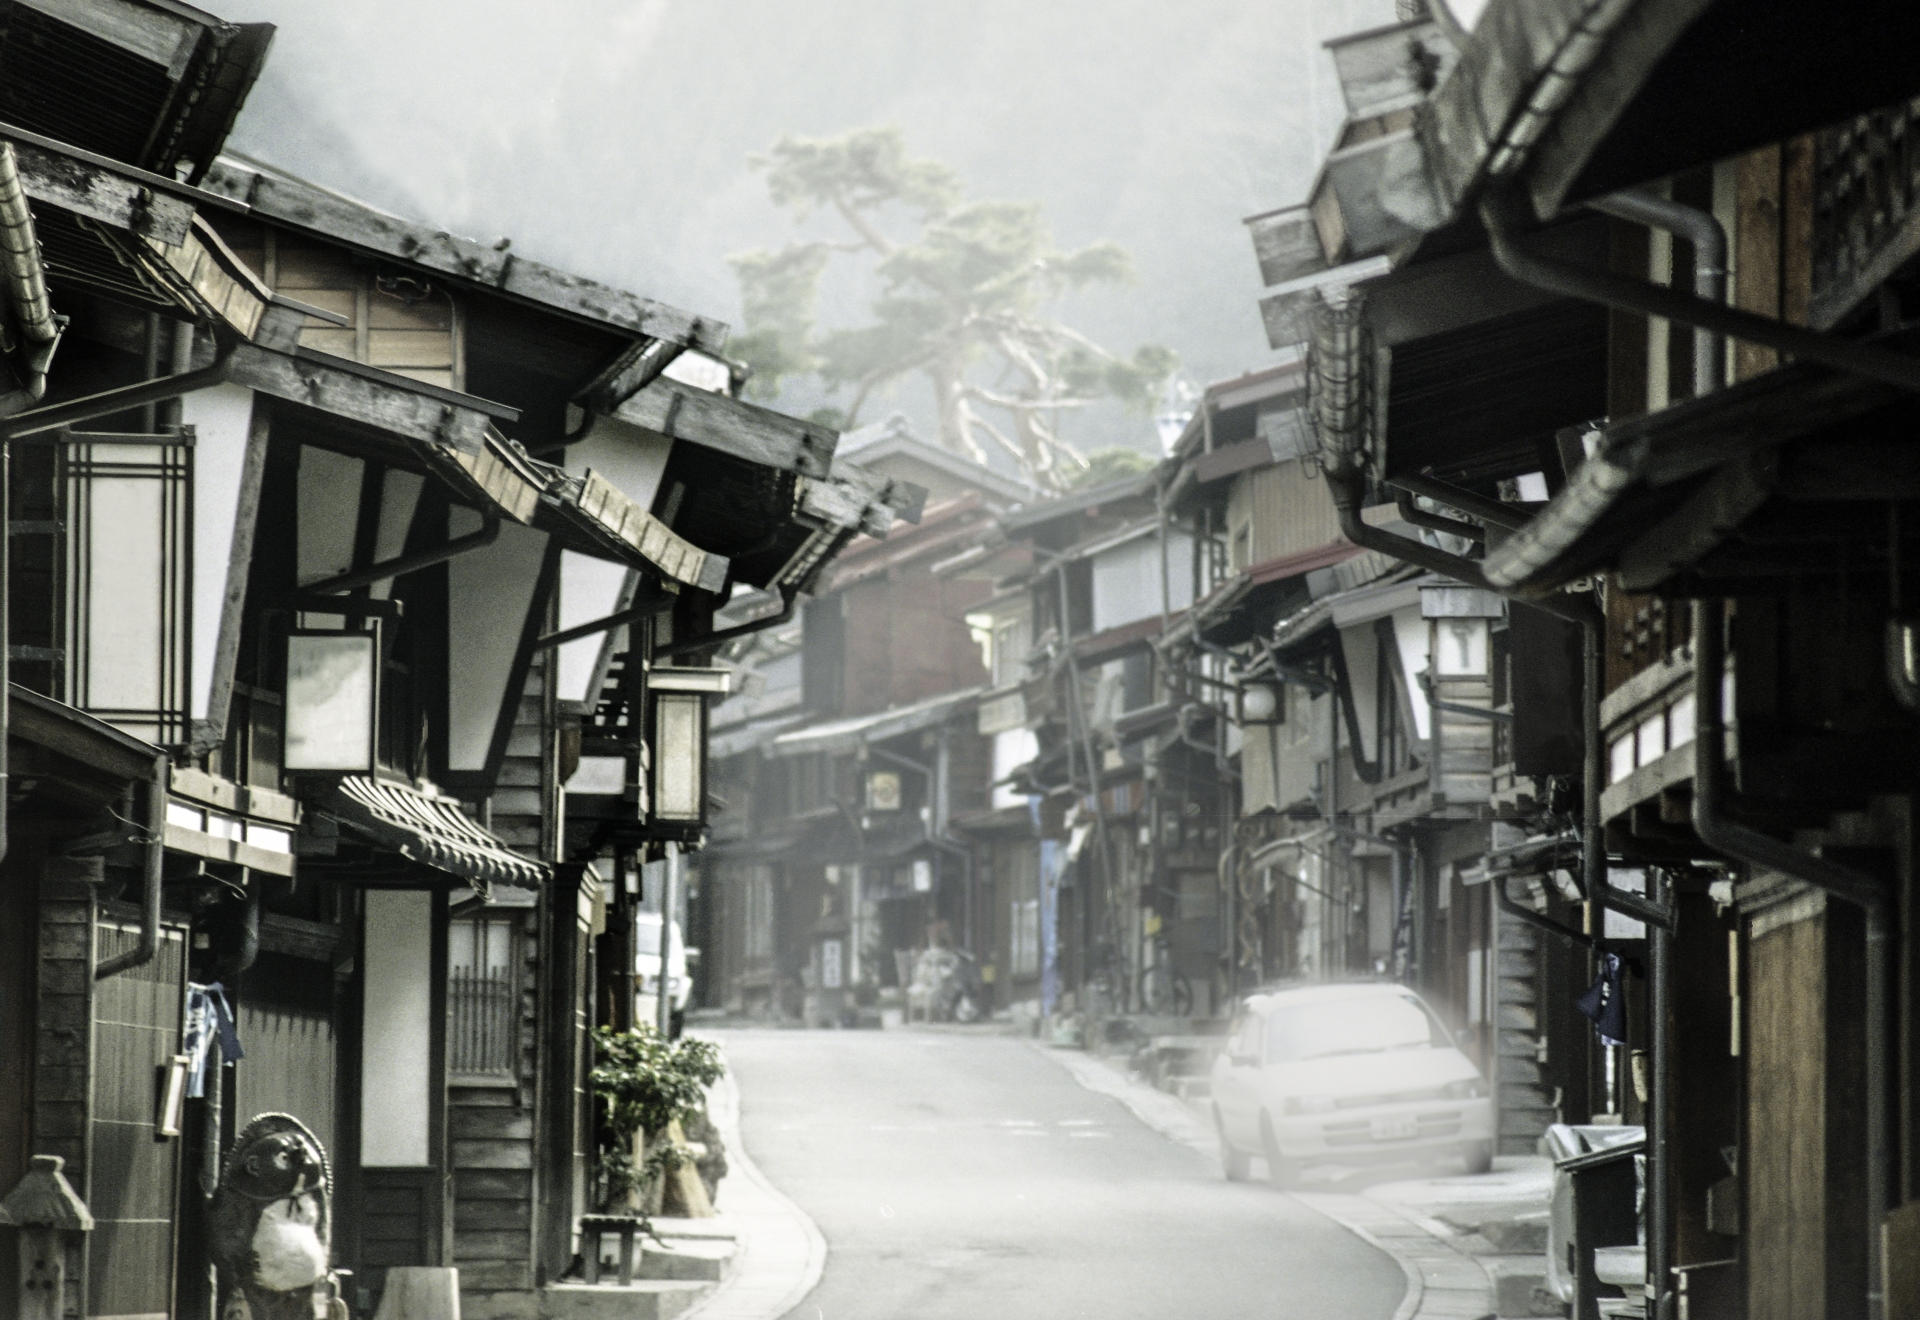 Historic Post Towns of the Nakasendo